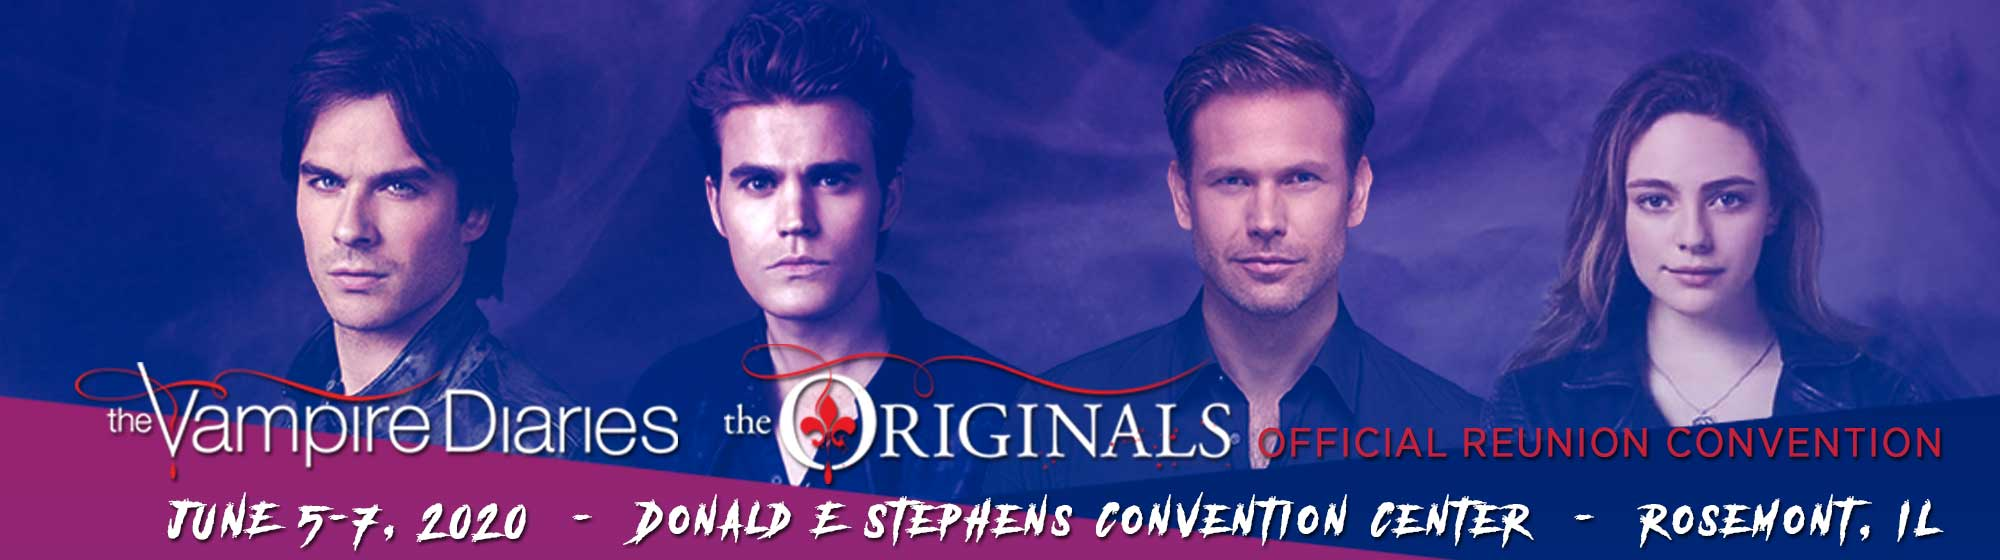 The Vampire Diaries and The Originals Official Convention Rosemont(Chicago area), IL June 28-20, 2019